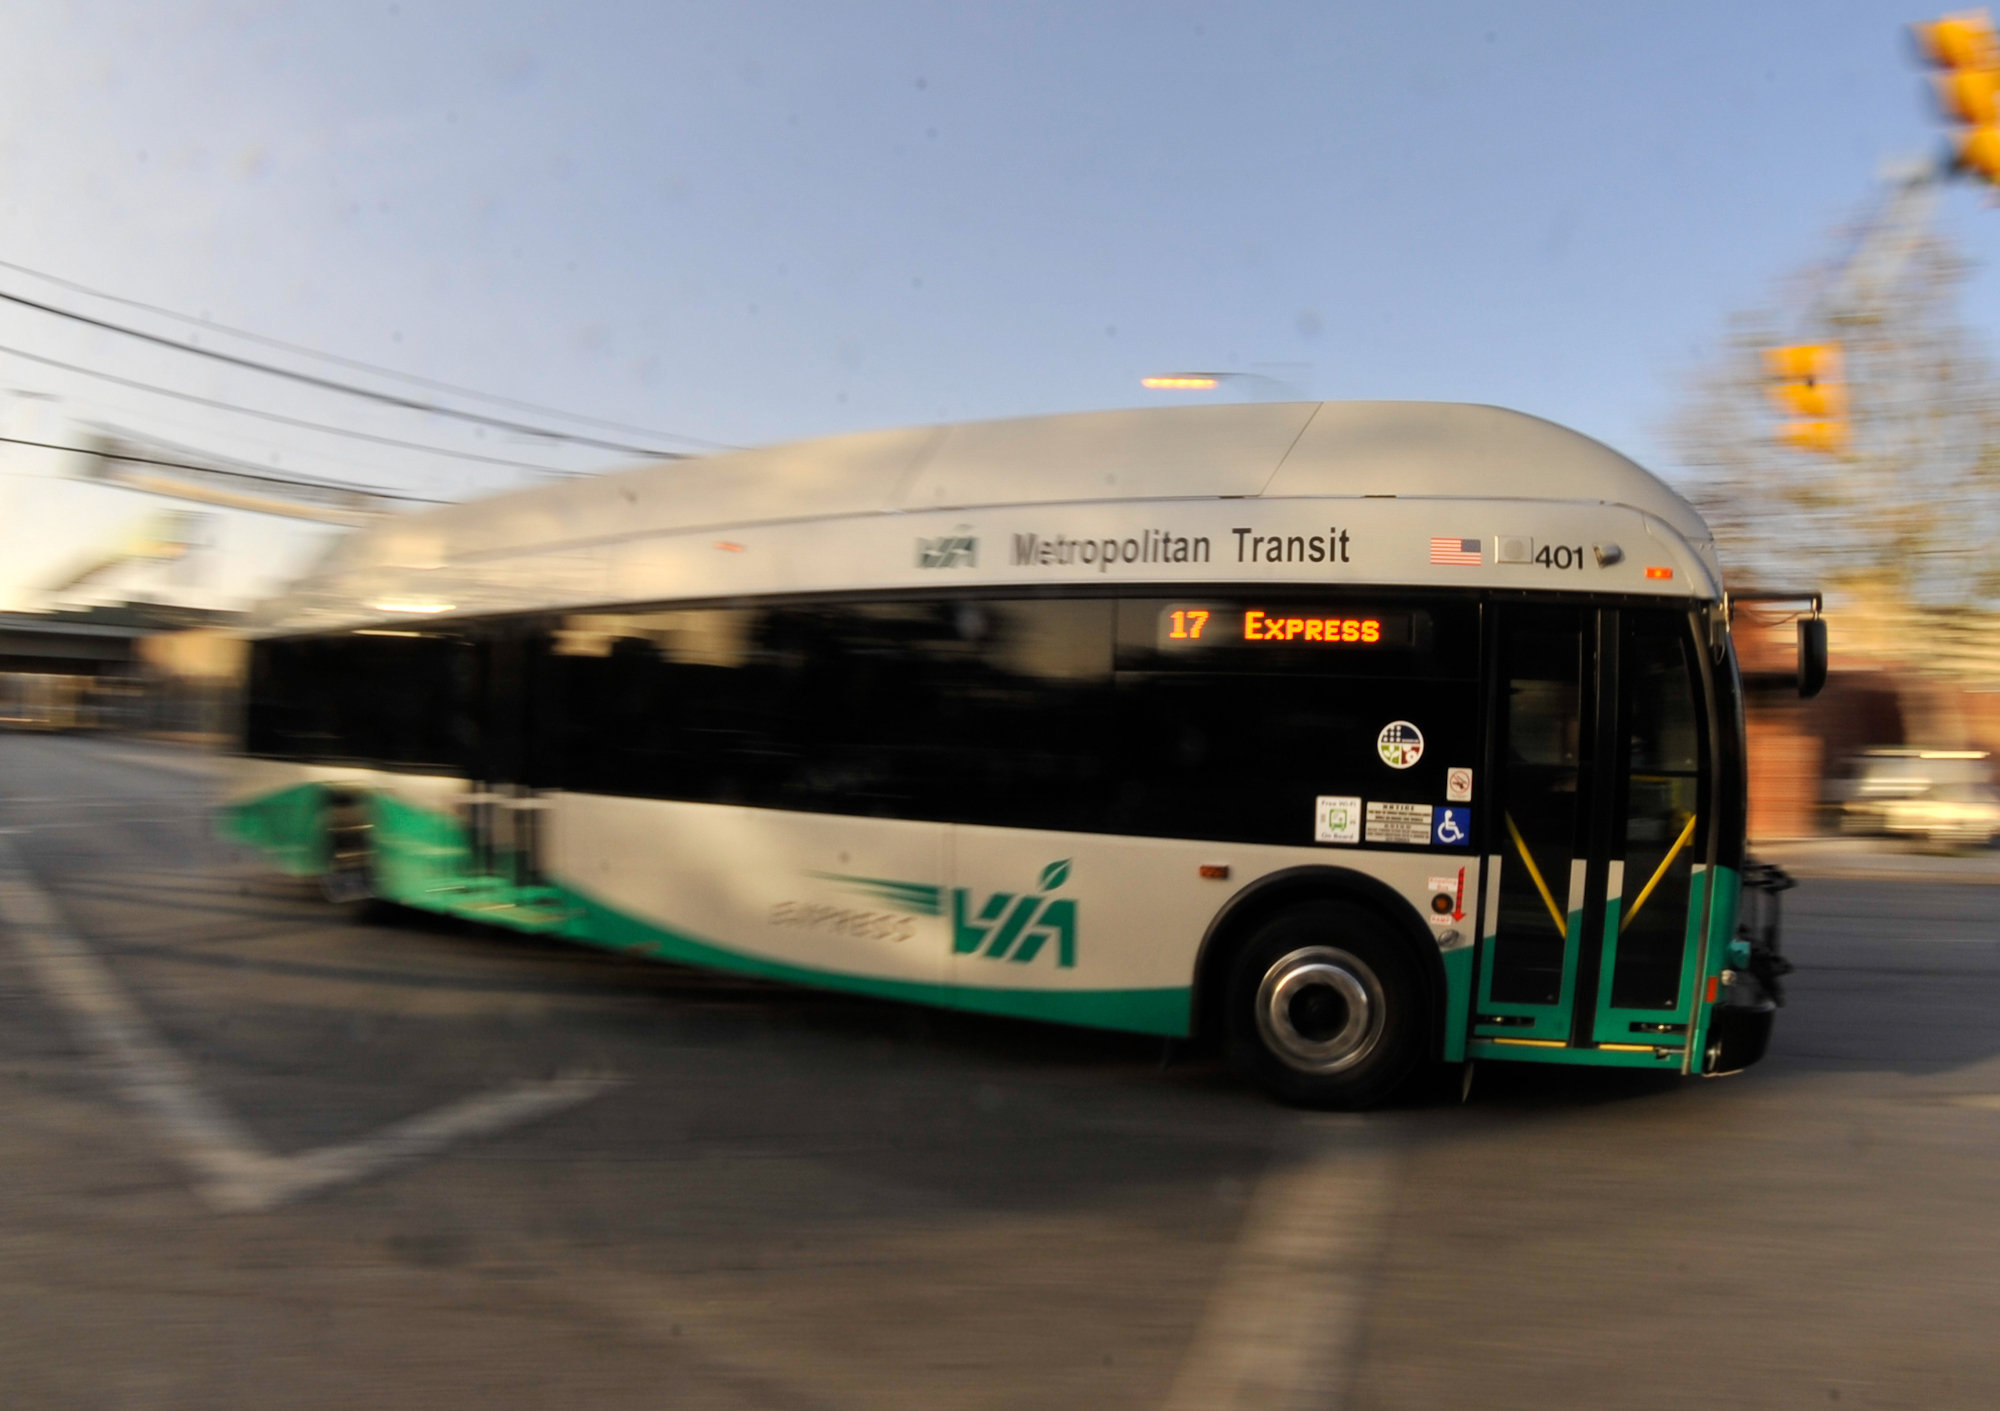 Via New Image Luring Riders San Antonio Express News